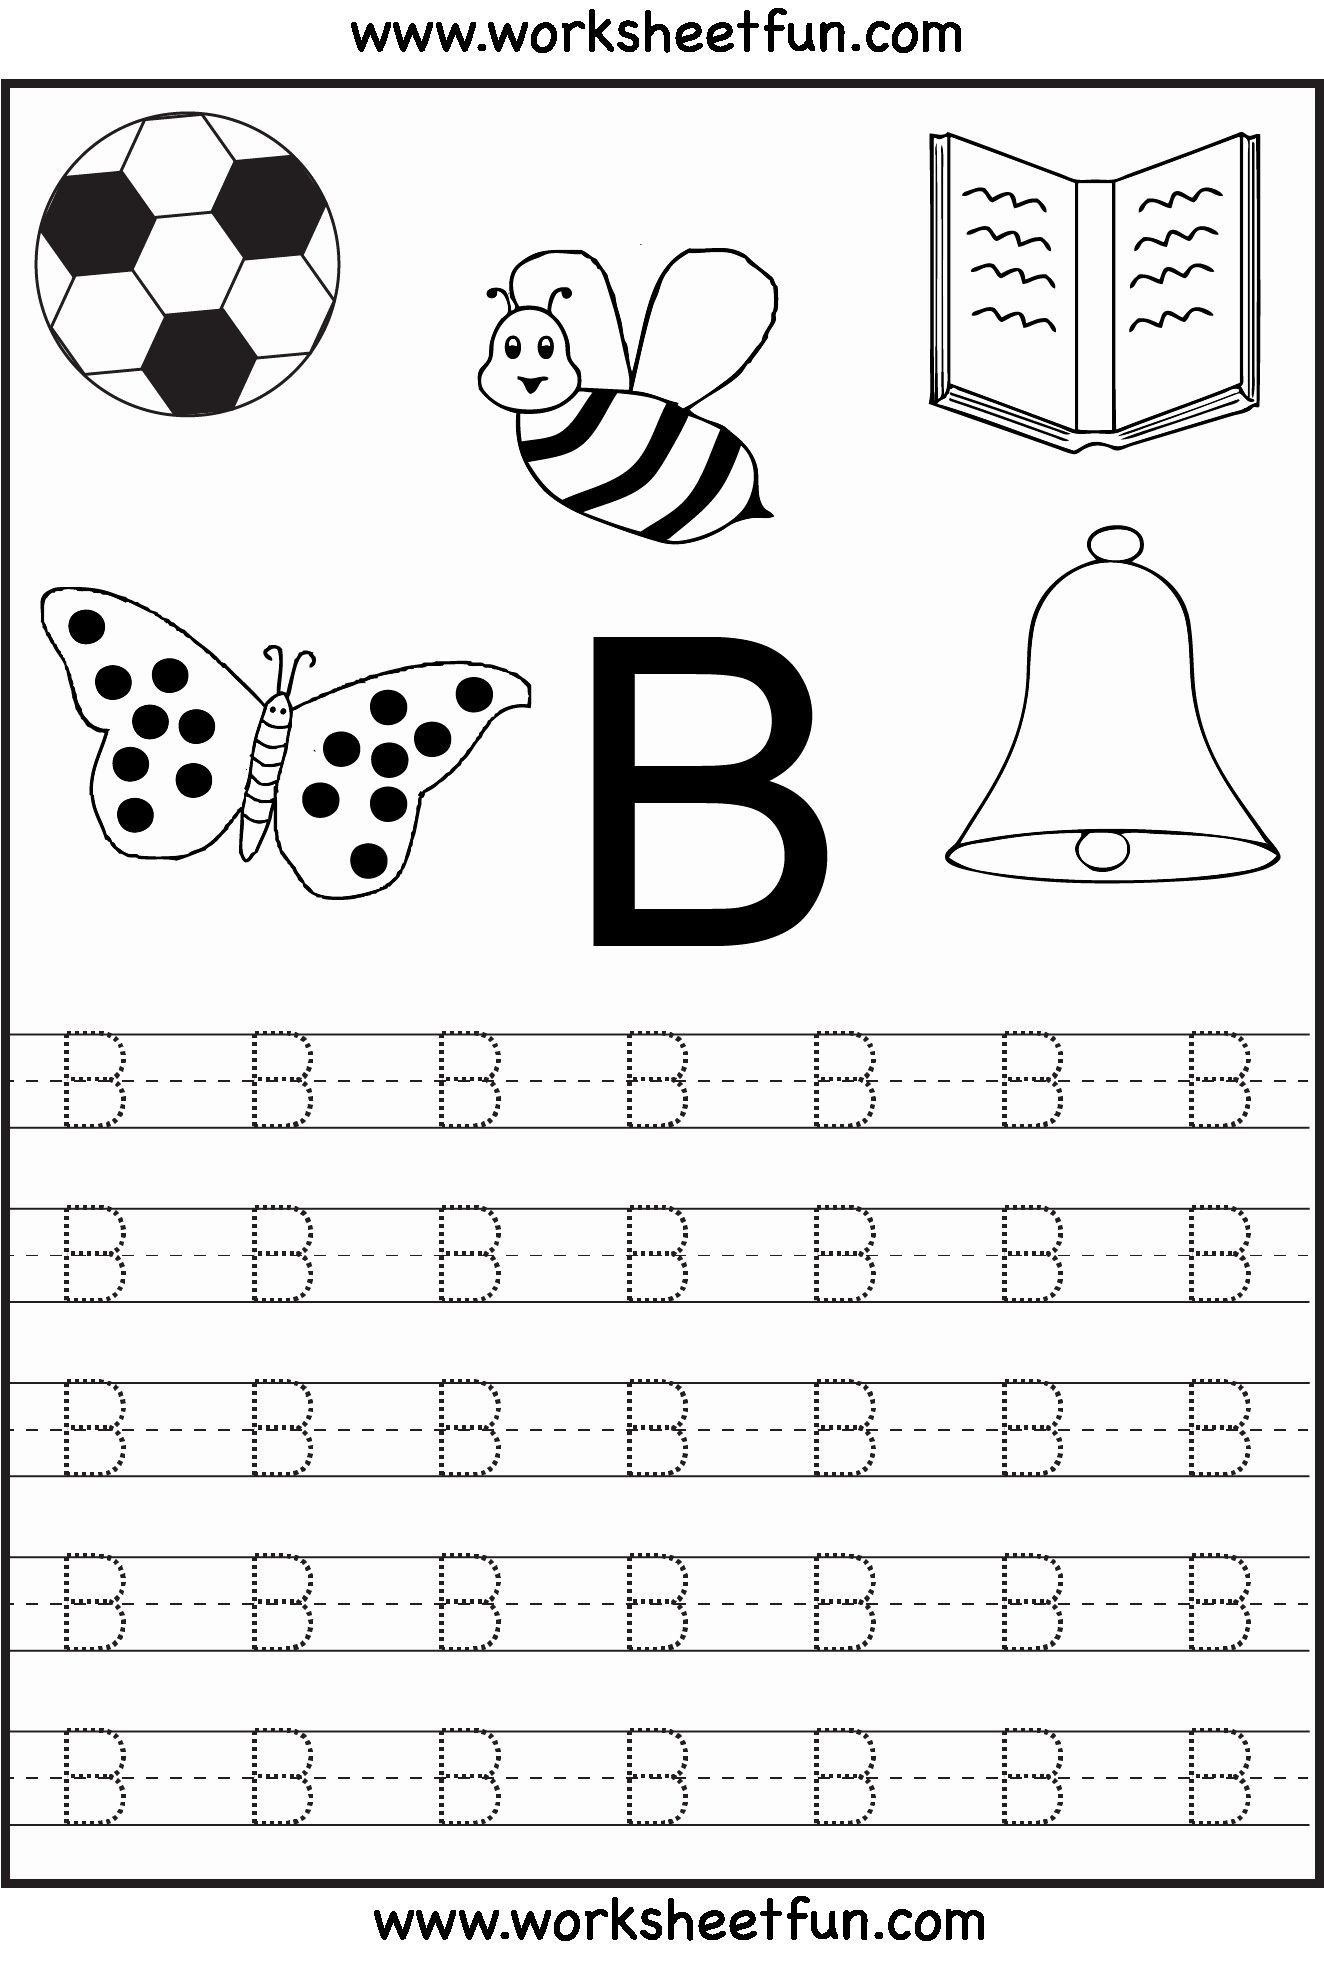 Letter Tracing Worksheets Az Alphabet Coloring Worksheets A Z Pdf Luxury Free Printable